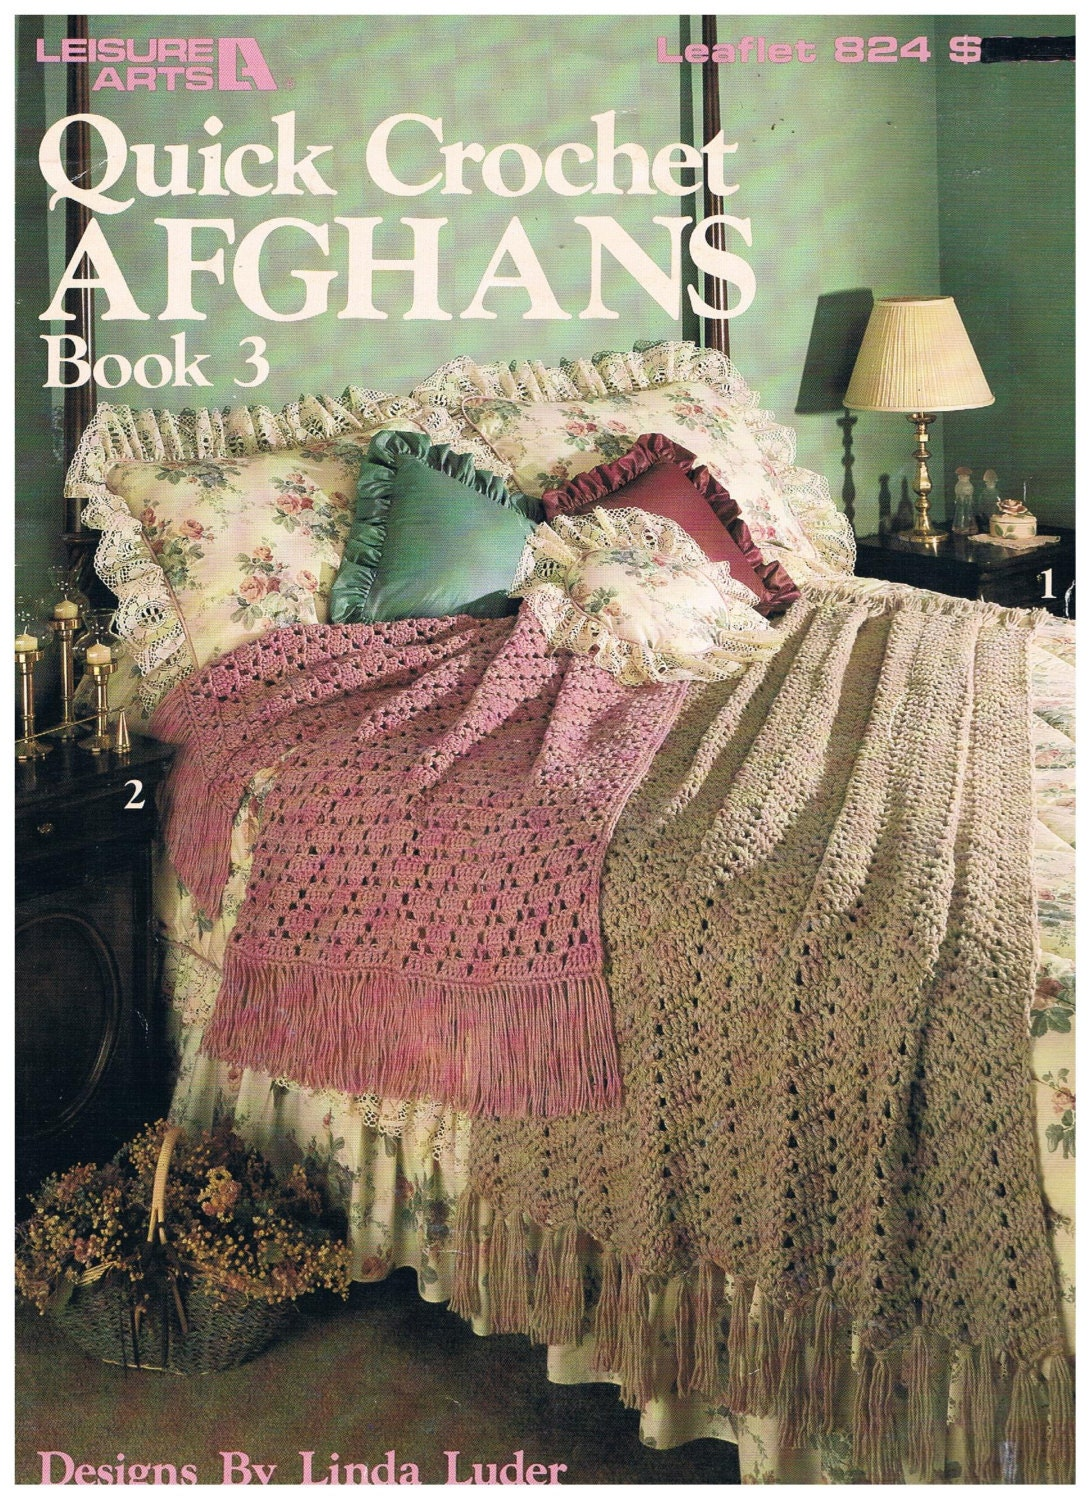 Crochet afghan patterns quick manet for quick crochet afghans vintage pattern 1989 by sparrowfinds bankloansurffo Images